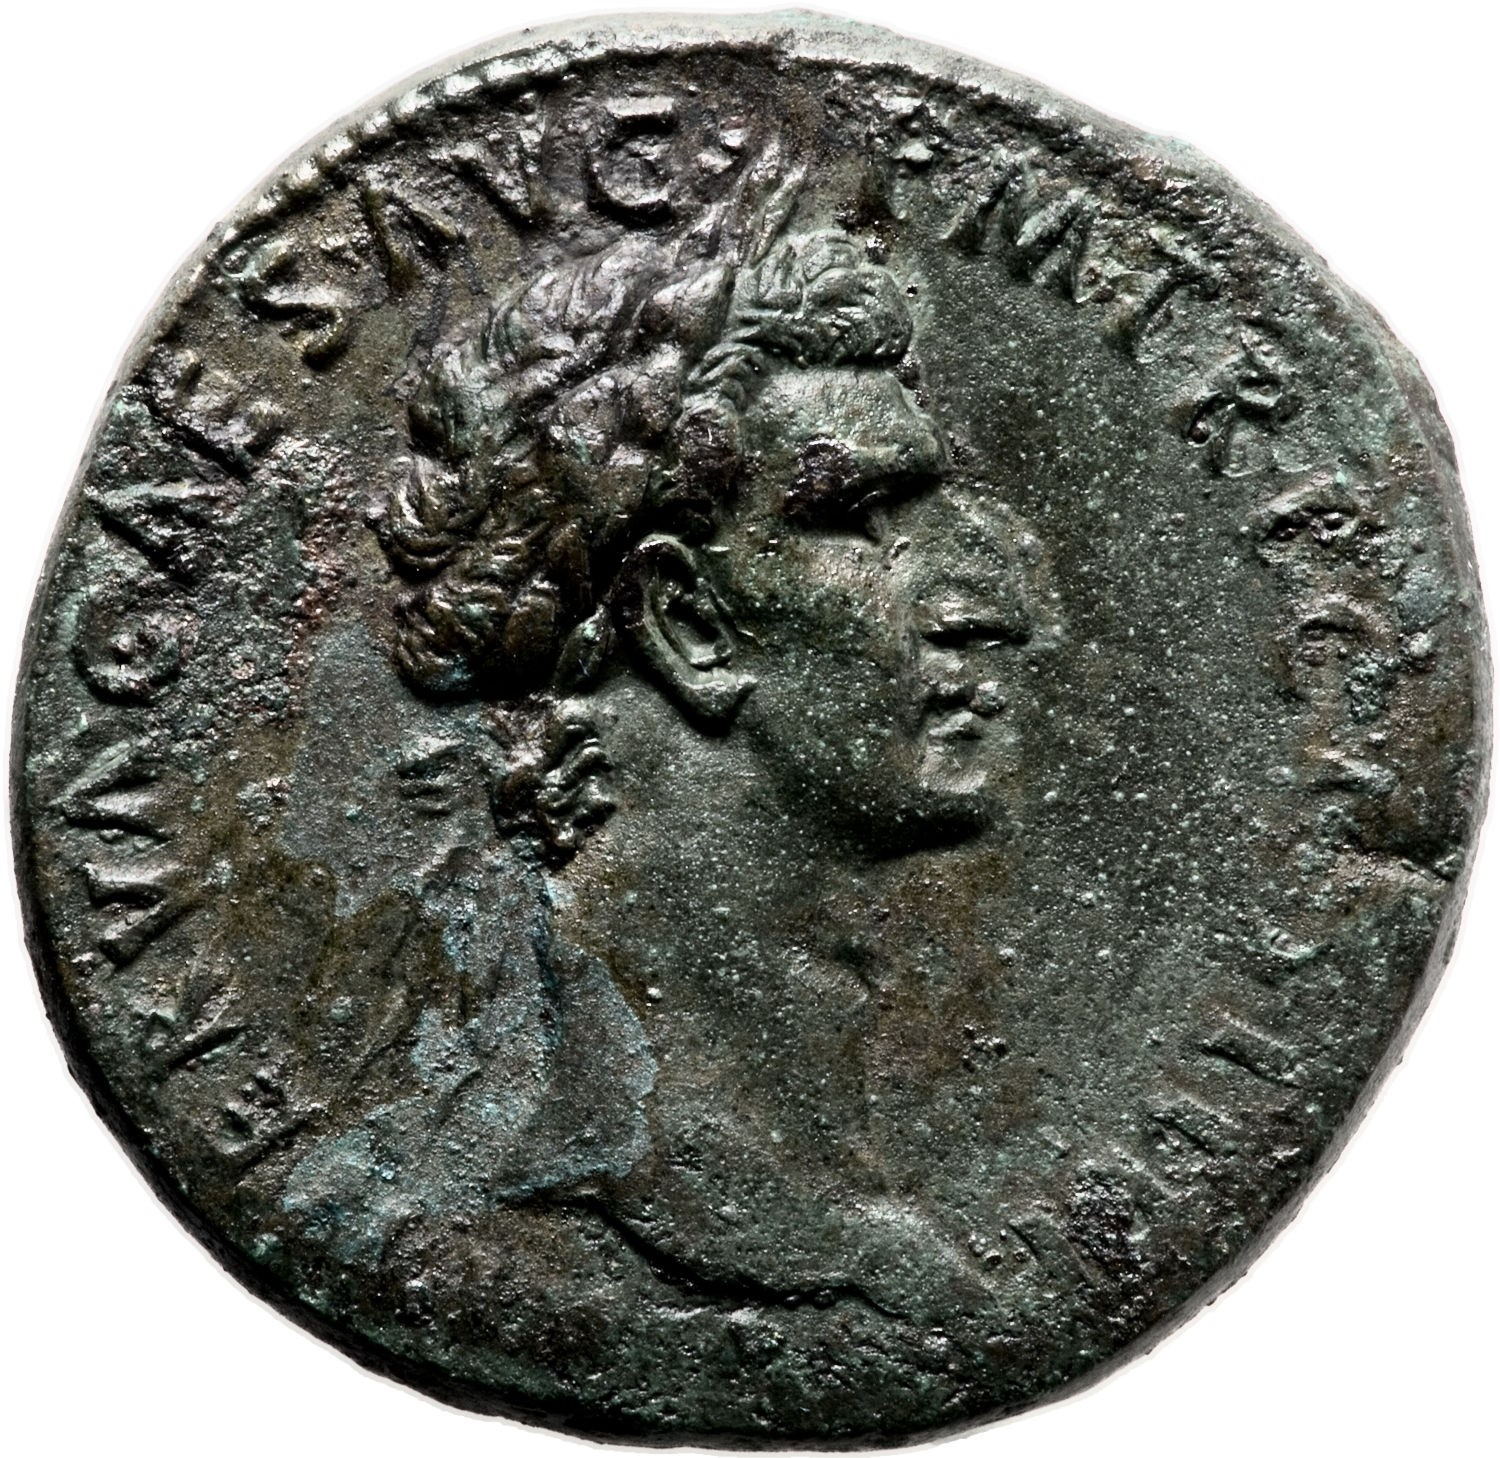 This Extra Fine example of Nerva's FISCI IVDAICI sestertius sold for $77,675 at a March 2012 Heritage Auctions sale.